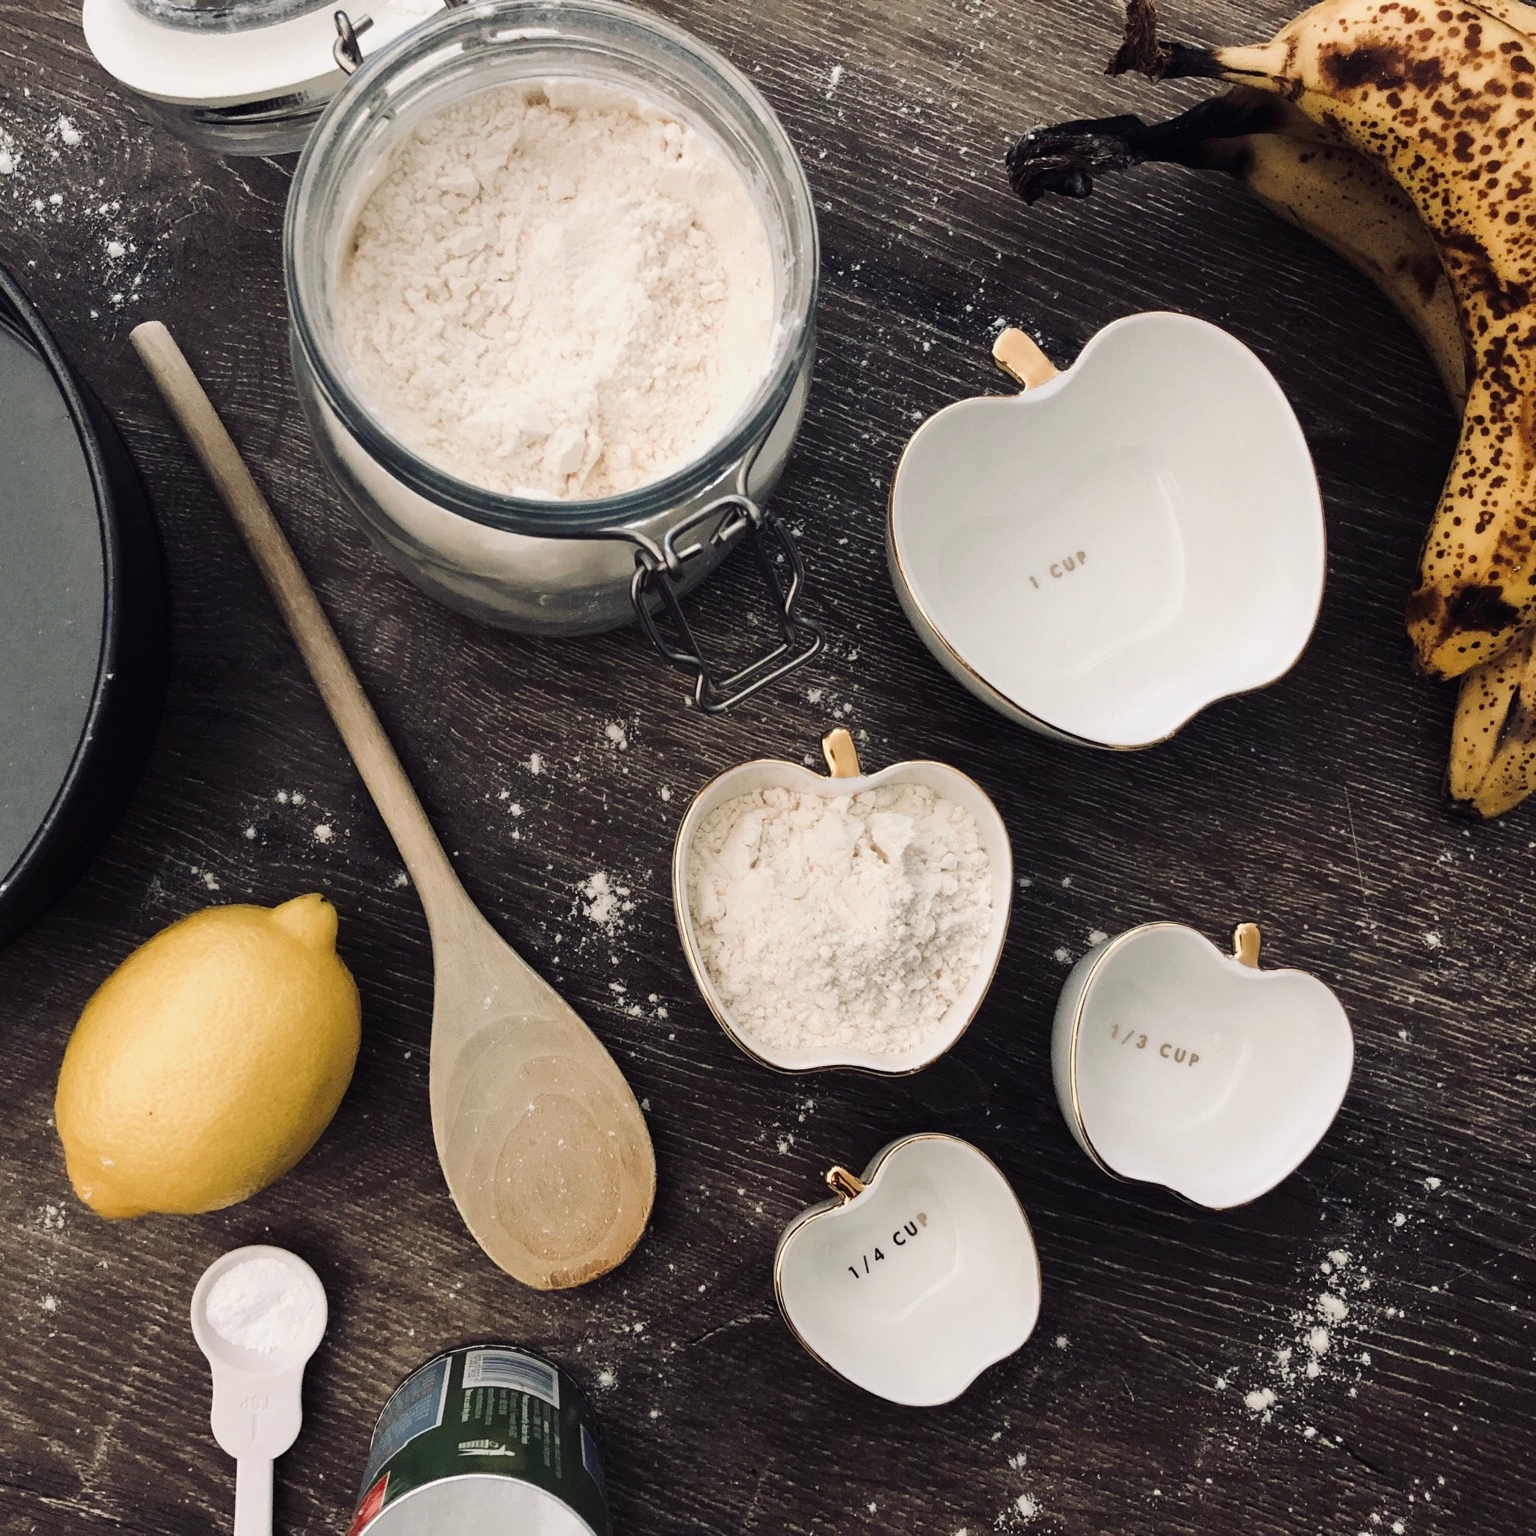 Cake Ingredients - 2 CUPS OF FLOUR 1/2 CUP OF BUTTER1/2 CUP OF SUGAR2-3 MASHED BANANAS 2 TBS BOILING MILK1 TSP BAKING POWDER 1 TSP BAKING SODA